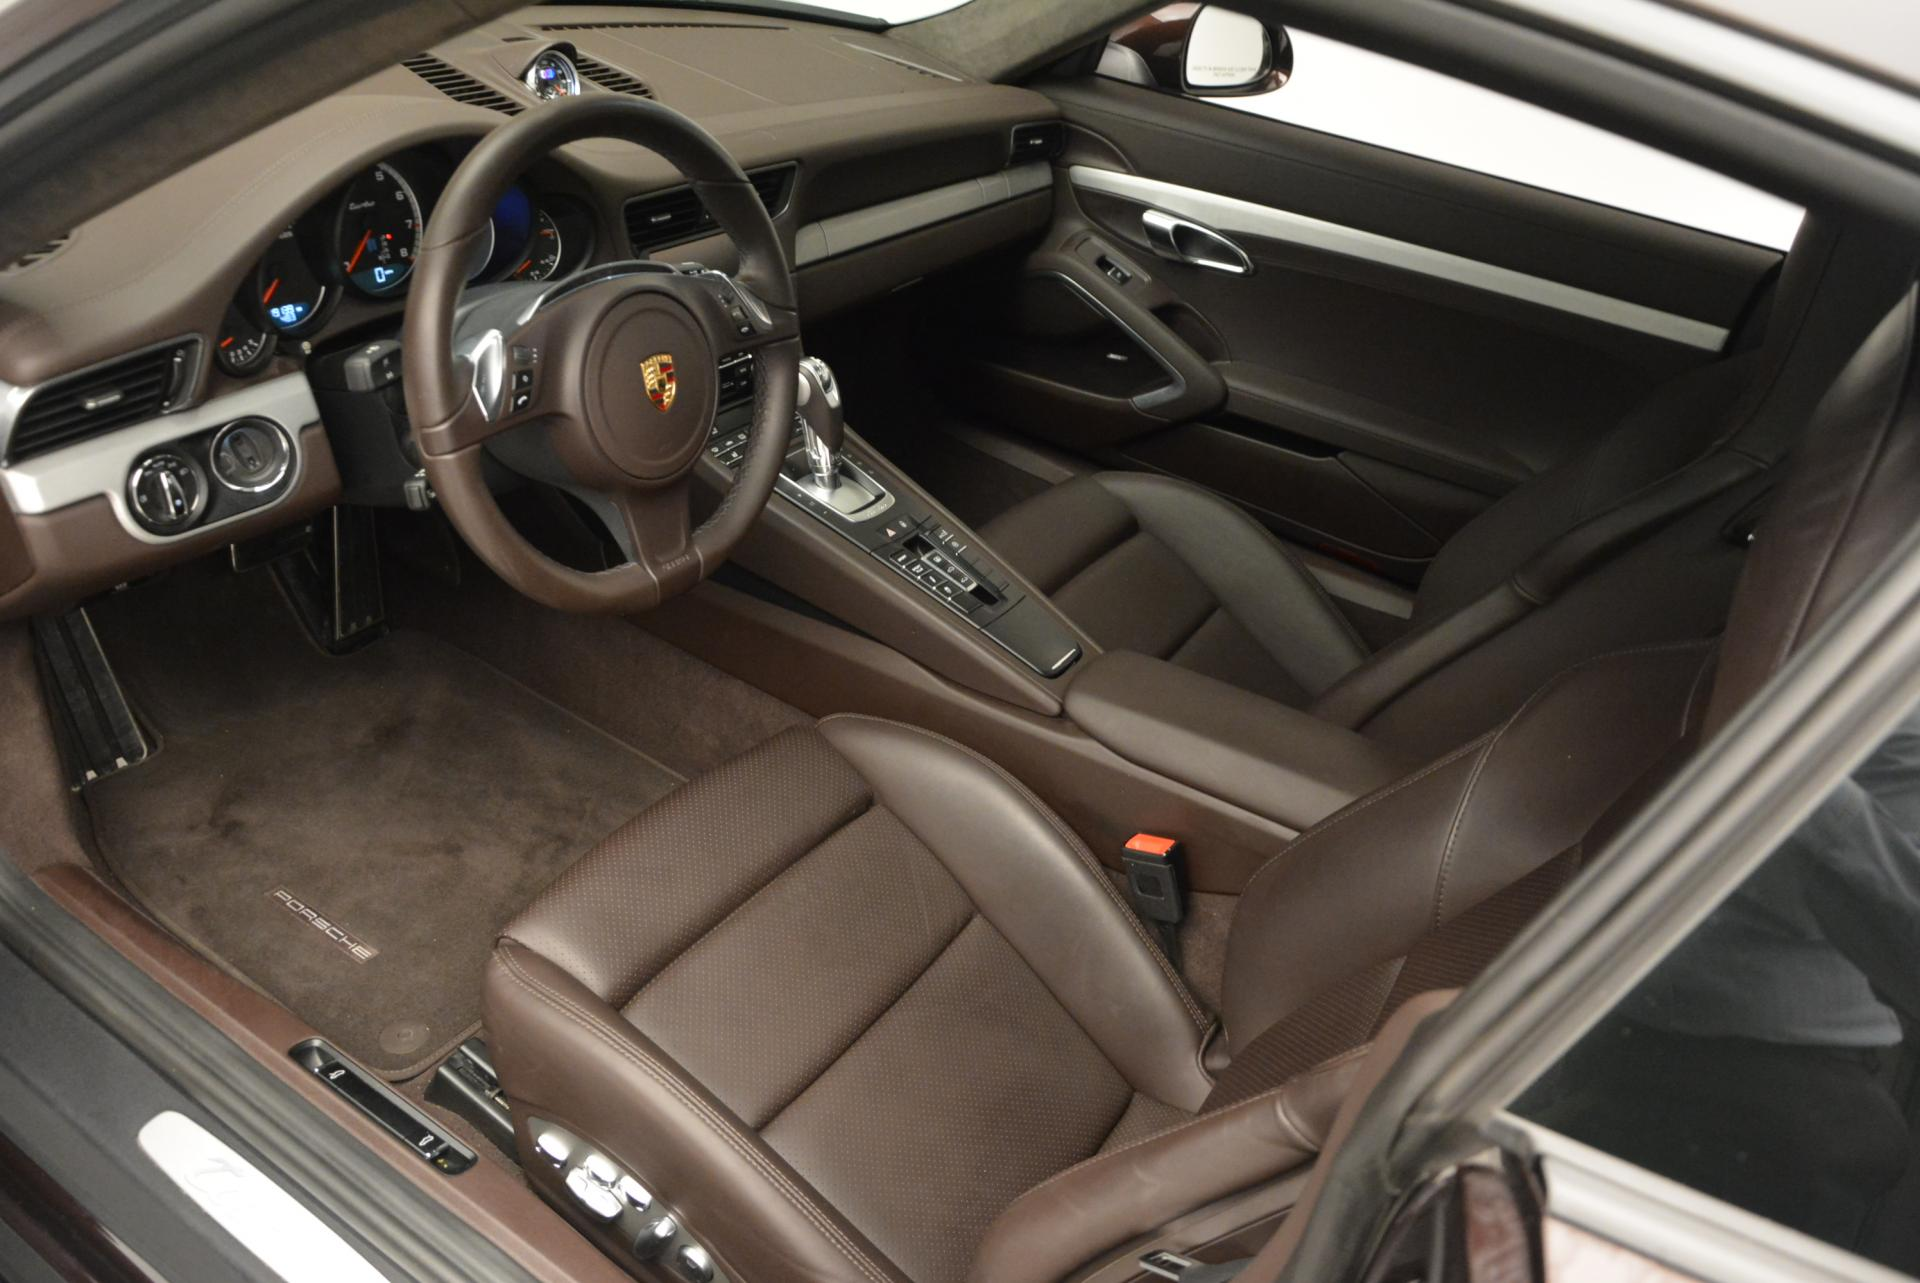 Used 2014 Porsche 911 Turbo For Sale In Greenwich, CT. Alfa Romeo of Greenwich, 7026 111_p16